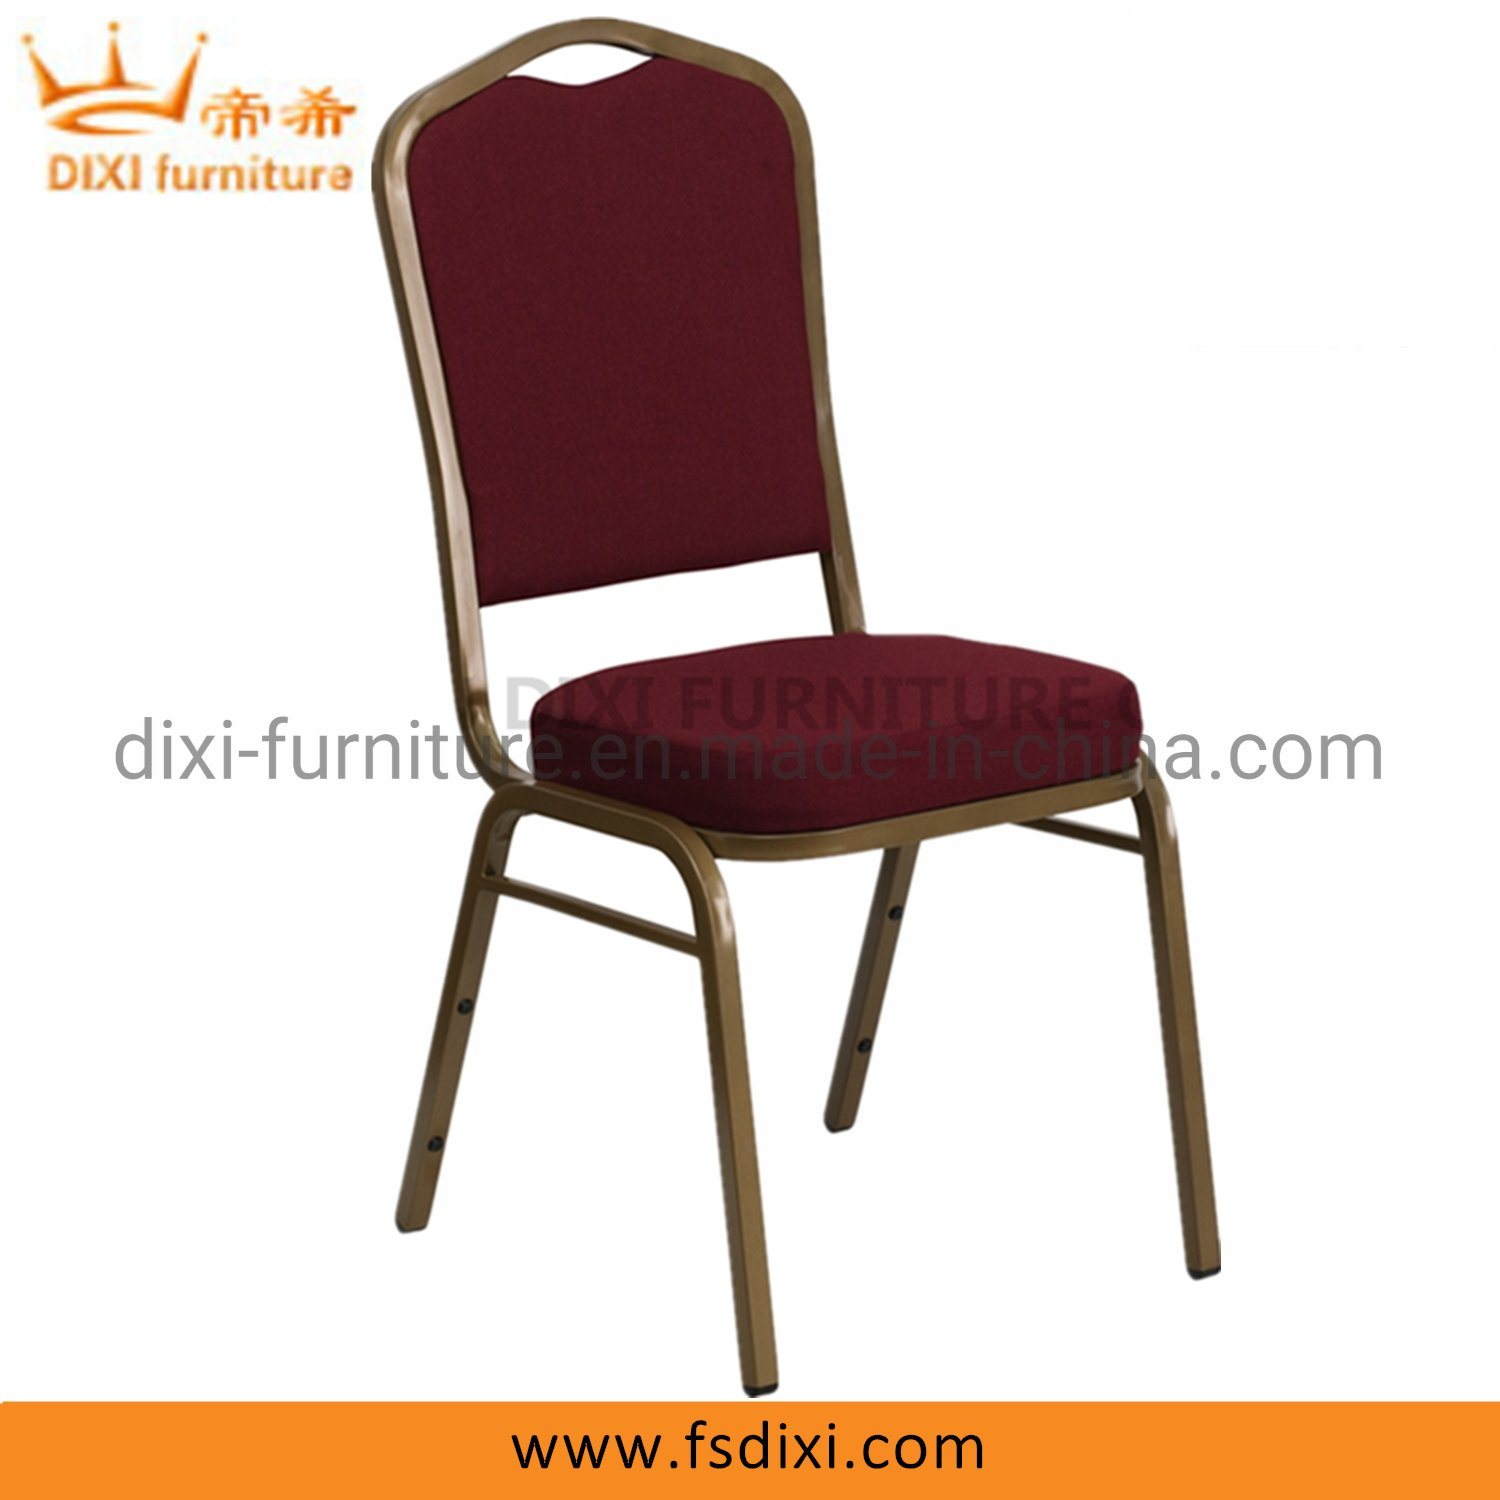 Hot Item Crown Back Stacking Banquet Chair In Burgundy Fabric Gold Frame